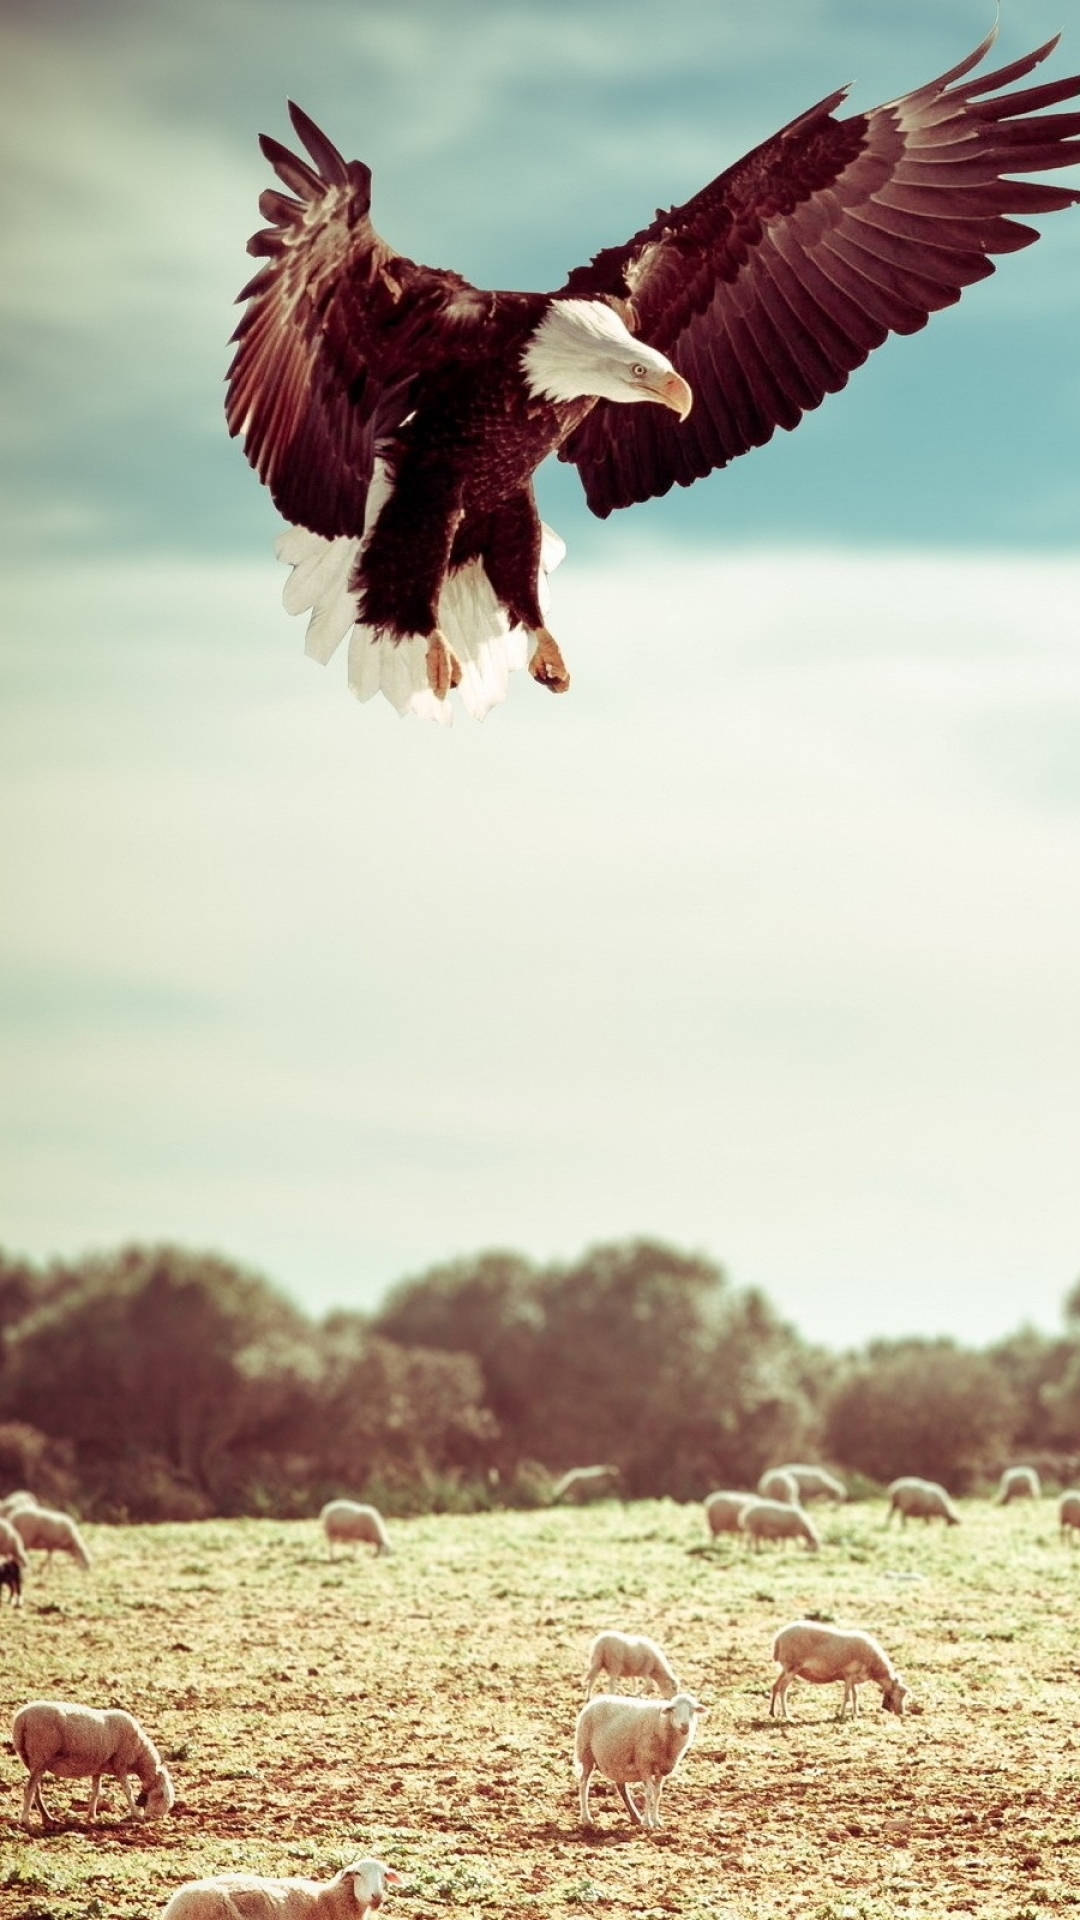 iphone wallpaper eagle field 3Wallpapers : notre sélection de fonds d'écran du 30/11/2017